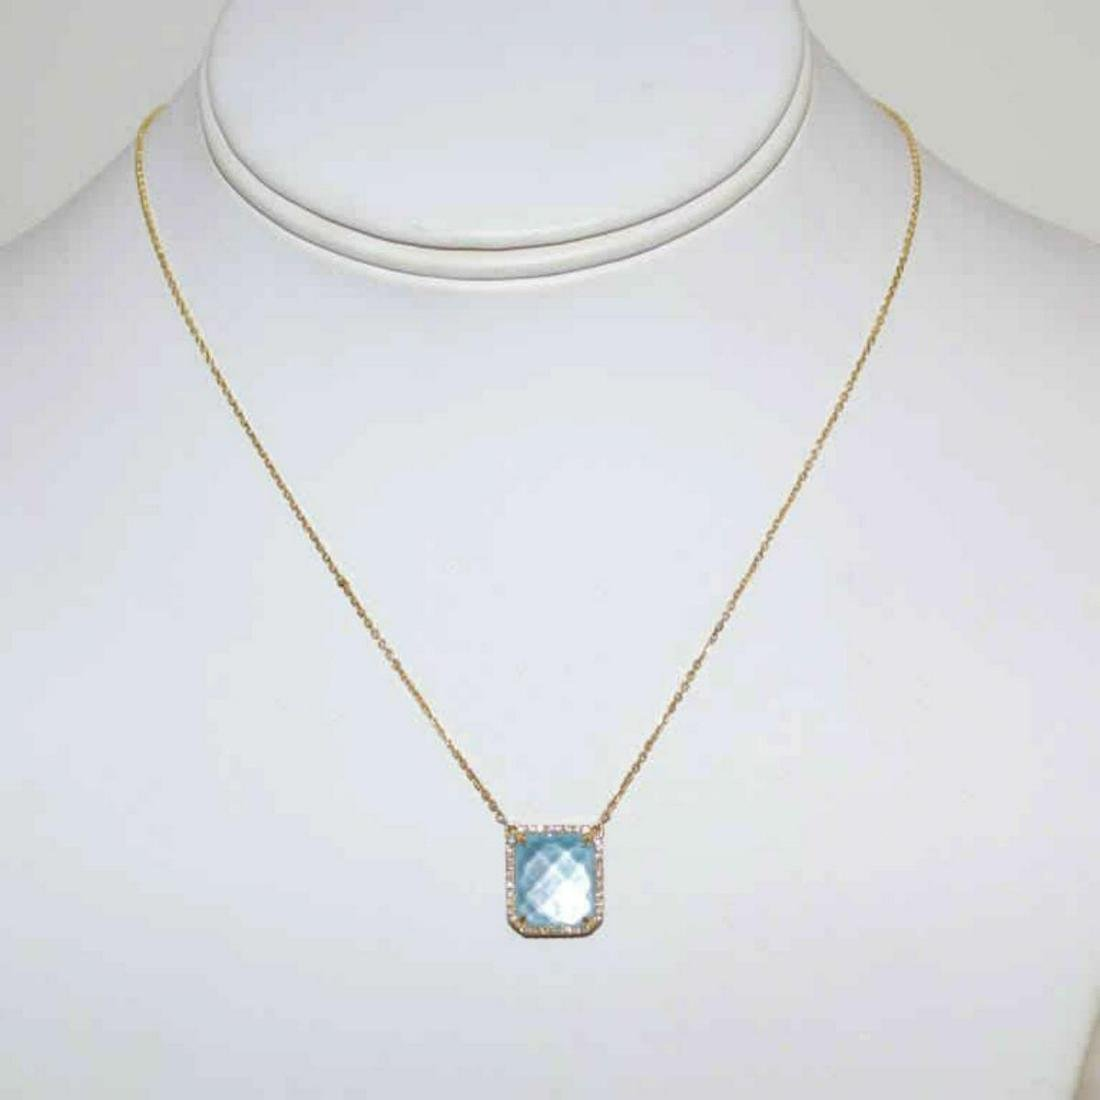 18kt yellow gold turquoise necklace by Doves